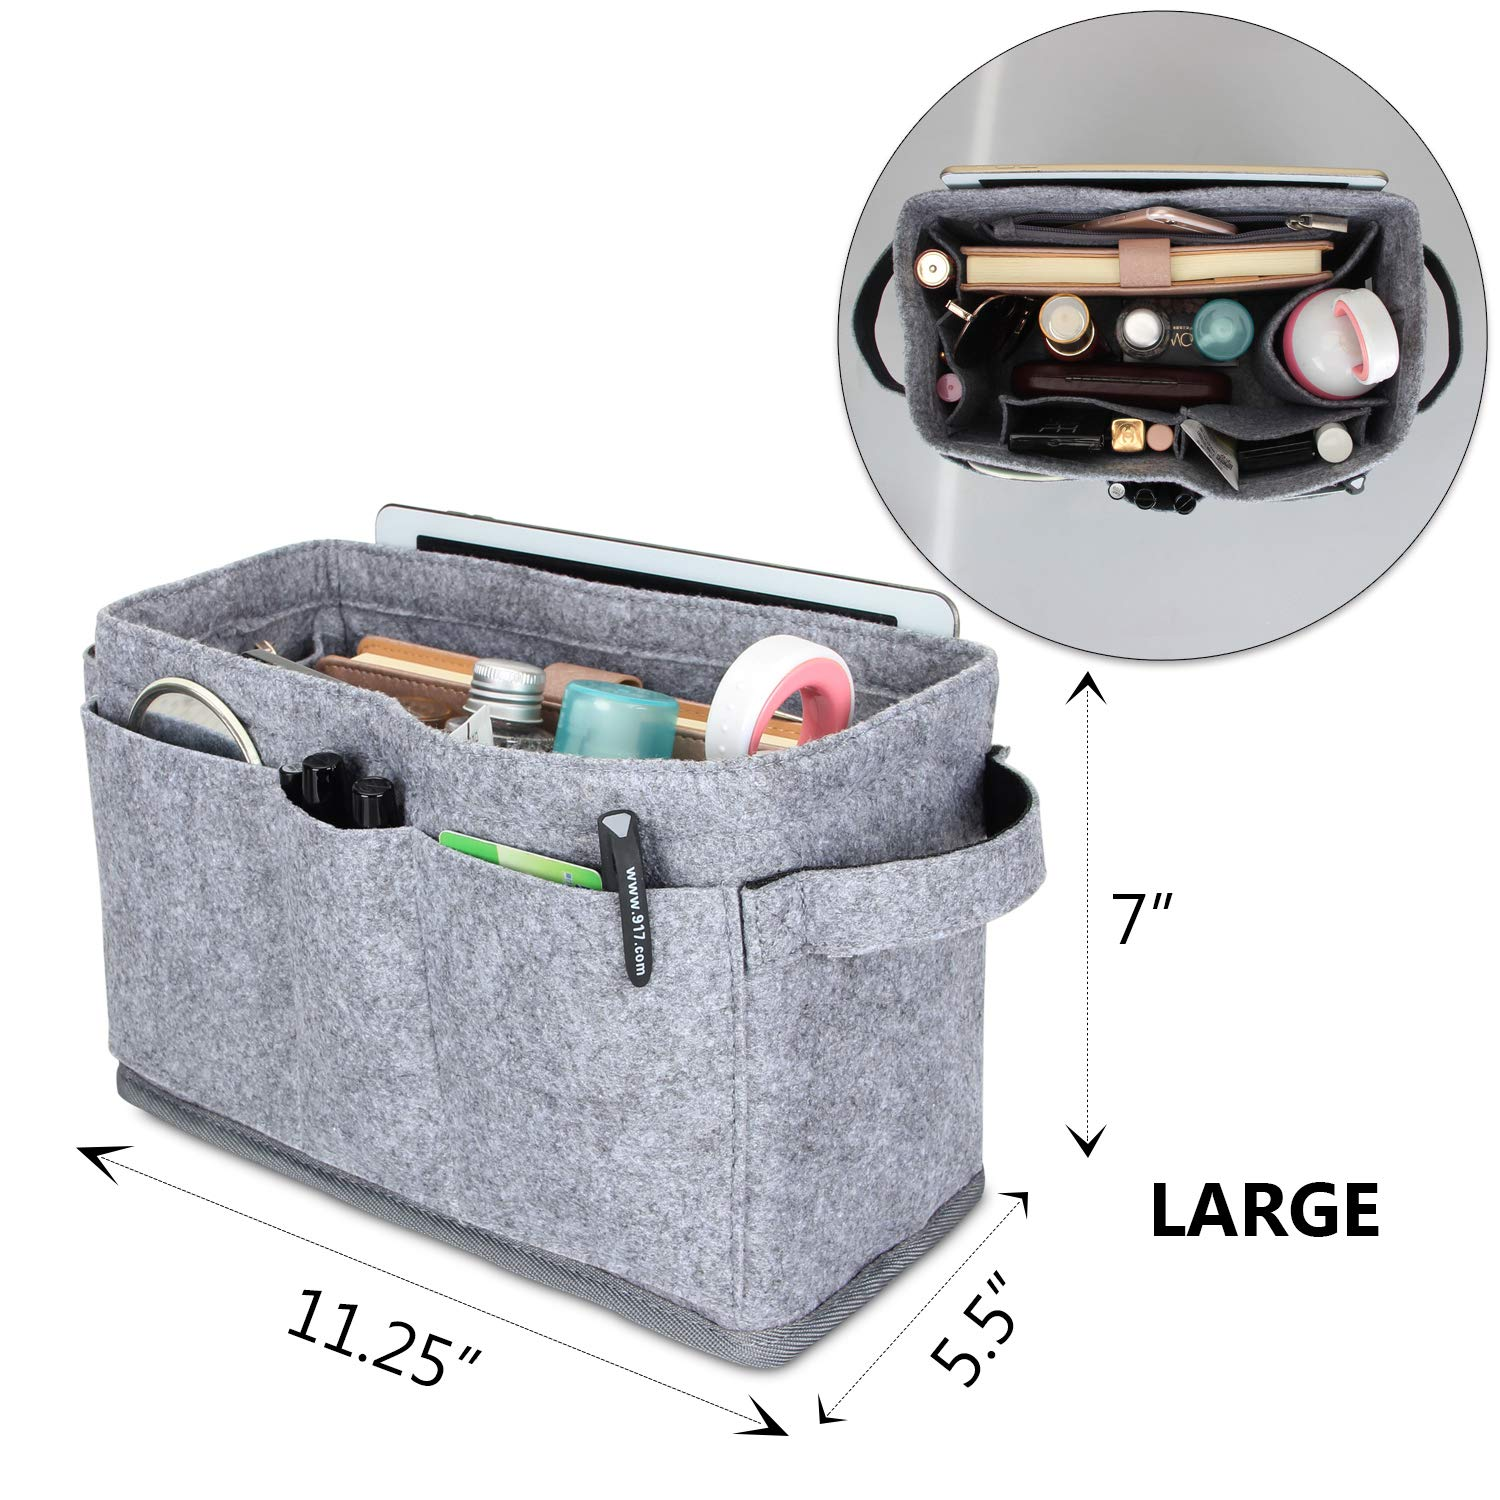 Bag in Bag Purse Packing Organizers Luxja Felt Organizer Insert for Handbag Felt Handbag Insert with 2 Handles Large, Gray